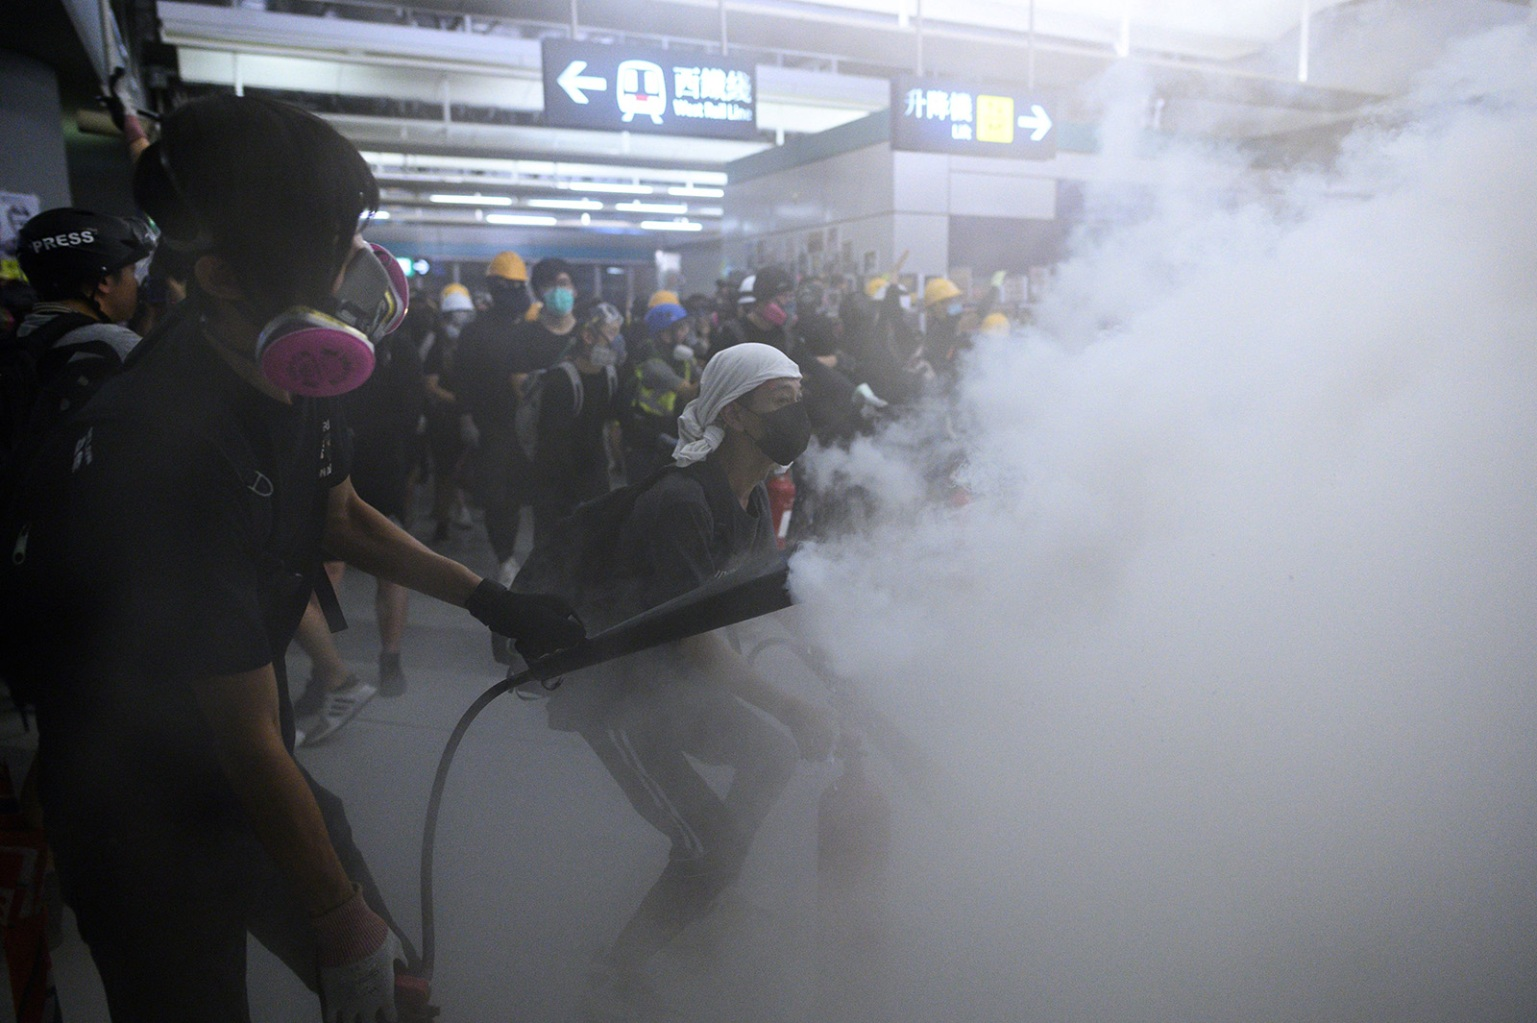 Protesters use fire extinguishers during a protest at the Yuen Long metro station in Hong Kong on Aug. 21. PHILIP FONG/AFP/Getty Images